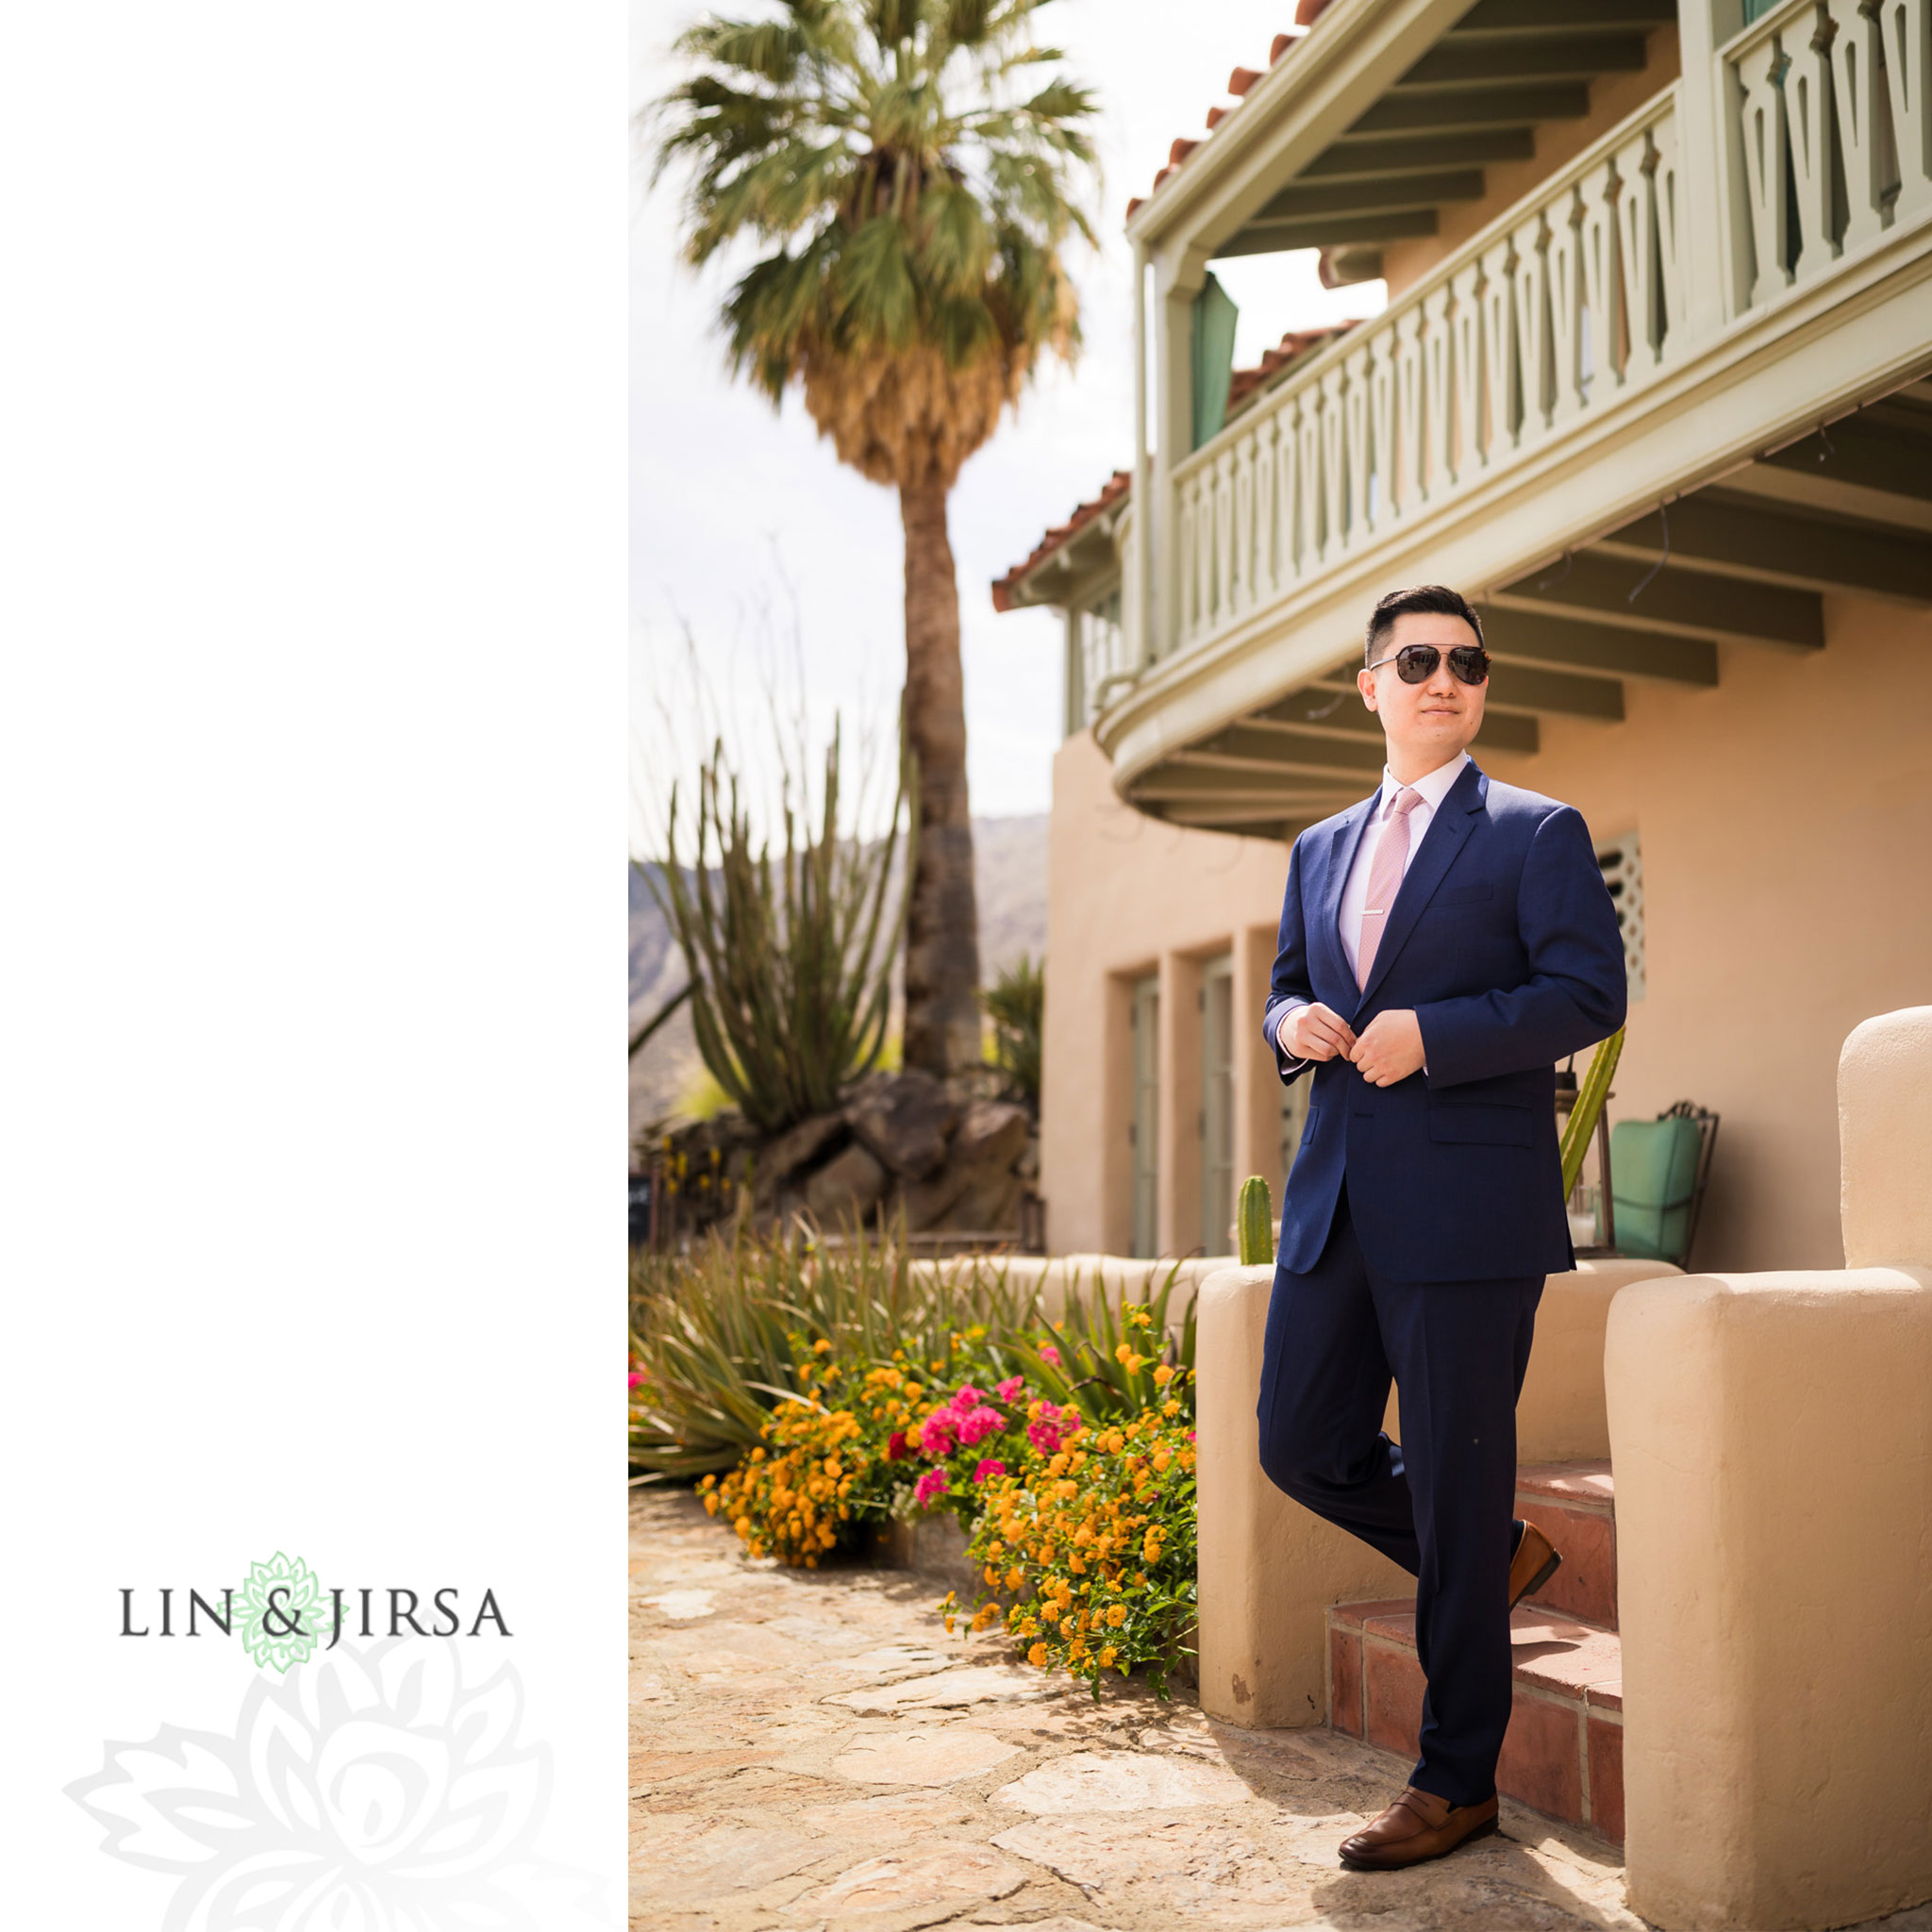 11 odonnell house palm springs groom wedding photography